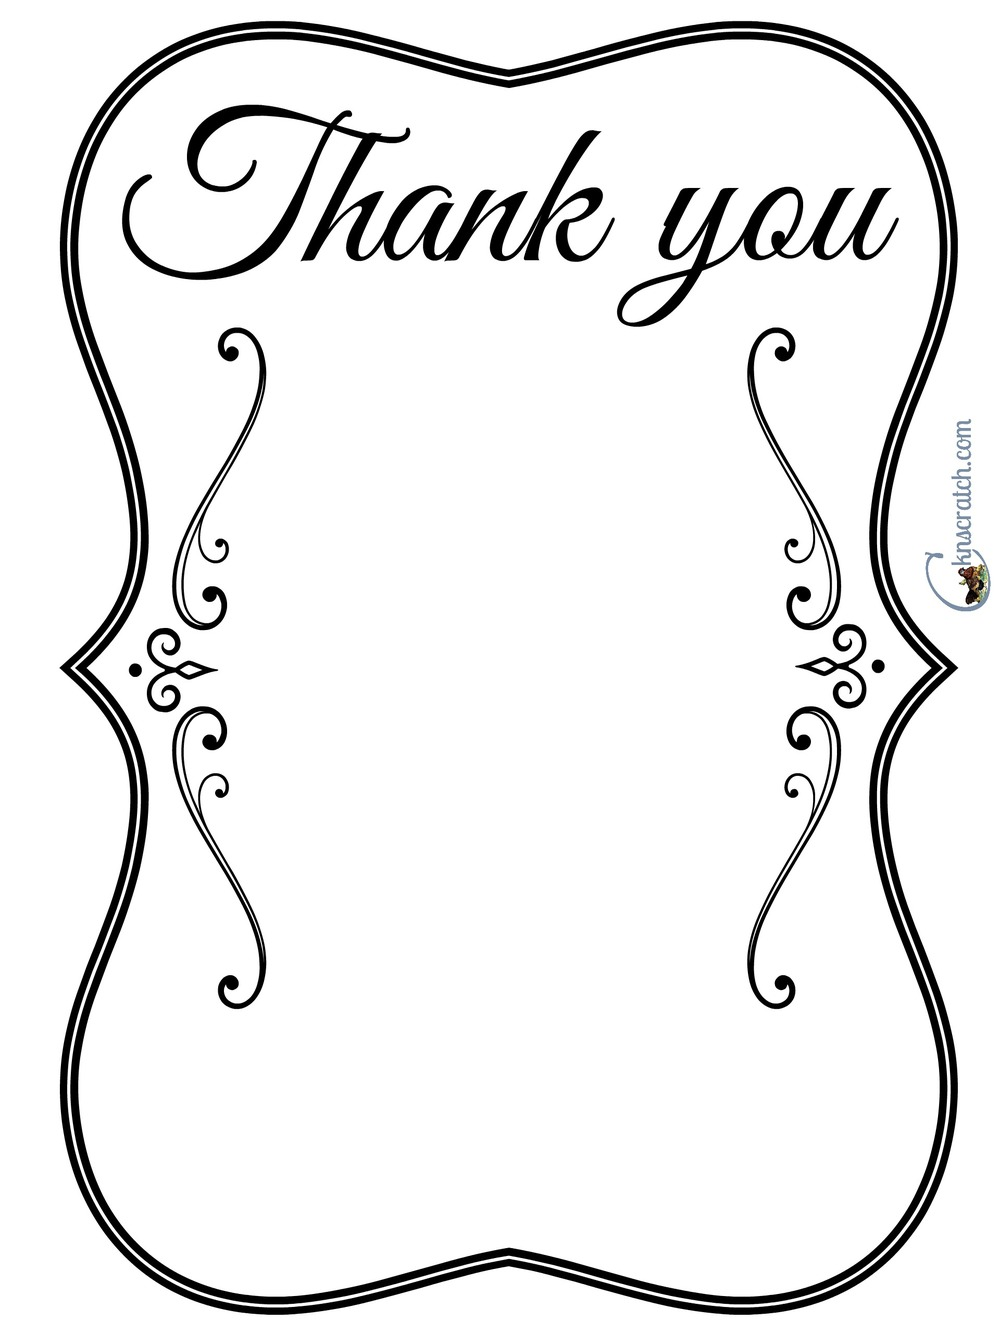 Thank you sheet- list your blessings or write a note